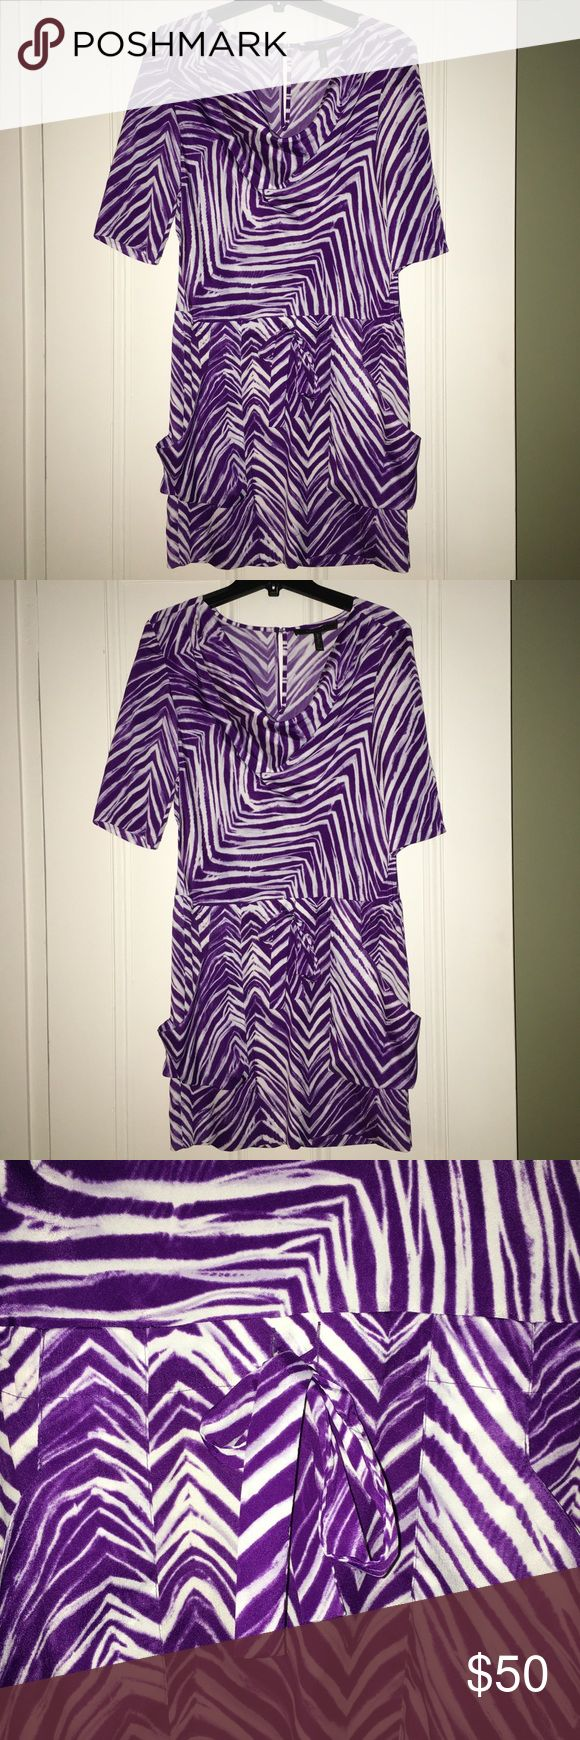 BCBG purple zebra print dress Flowing and light, this dress 👗 is flattering and functional. The waist has a tie option to make it more defined and the pockets on the skirt fall nicely on your legs.  The dress has a scoop neck and button closure on the back. I'm selling as I have too many dresses! I only wore it twice. It's in excellent condition. BCBGMaxAzria Dresses Mini